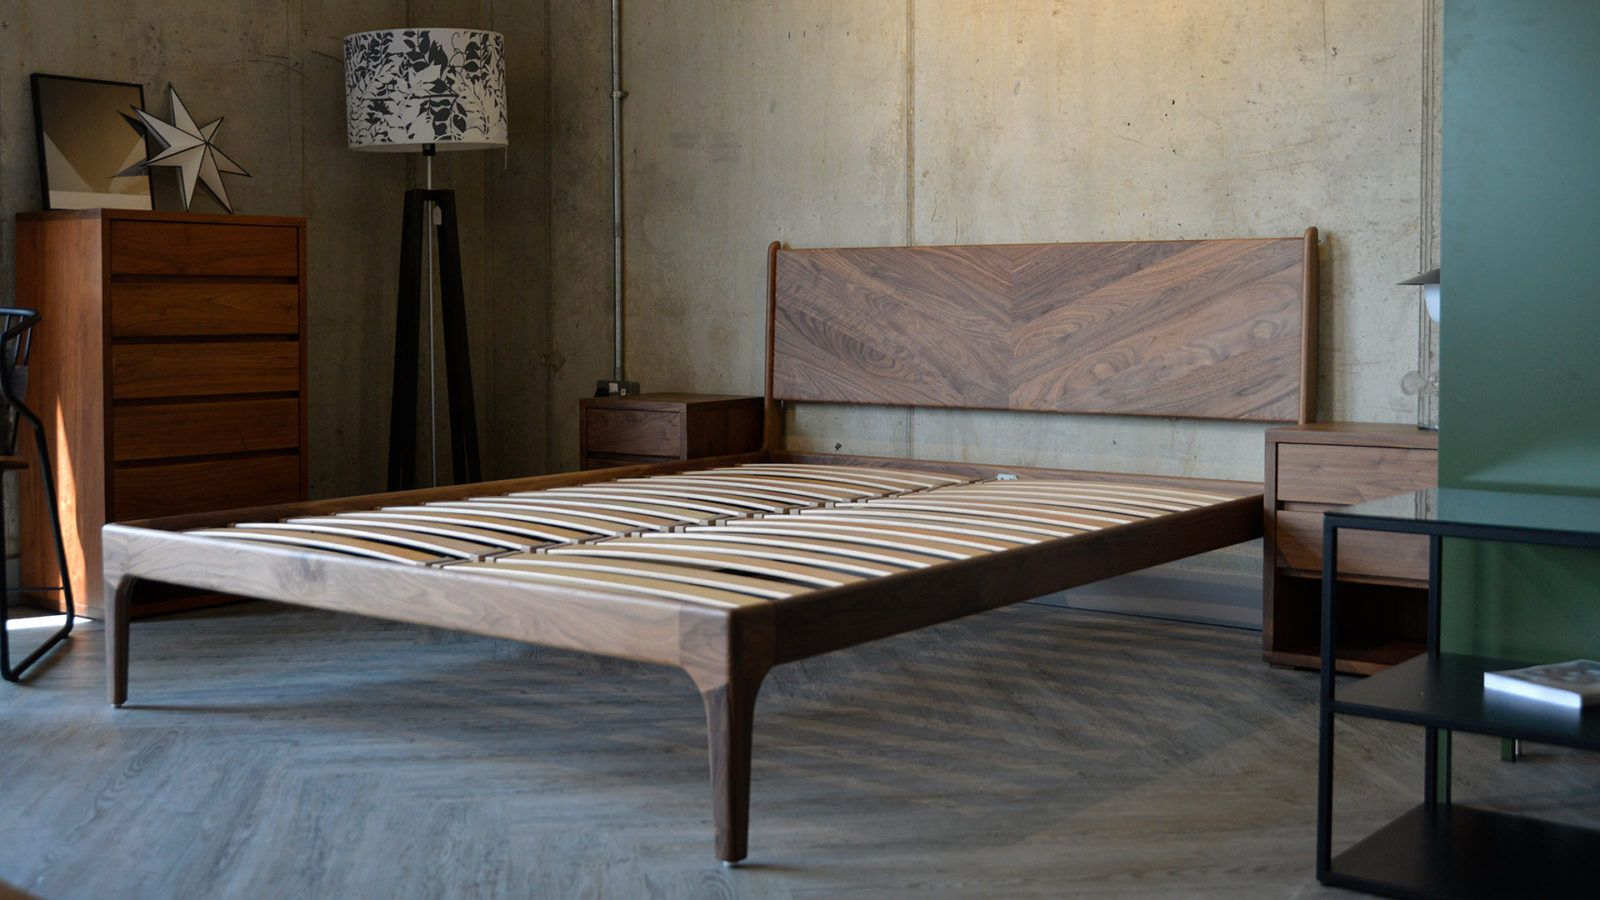 walnuthoxtonwithoutmattress in 2019 Bed, Wood beds